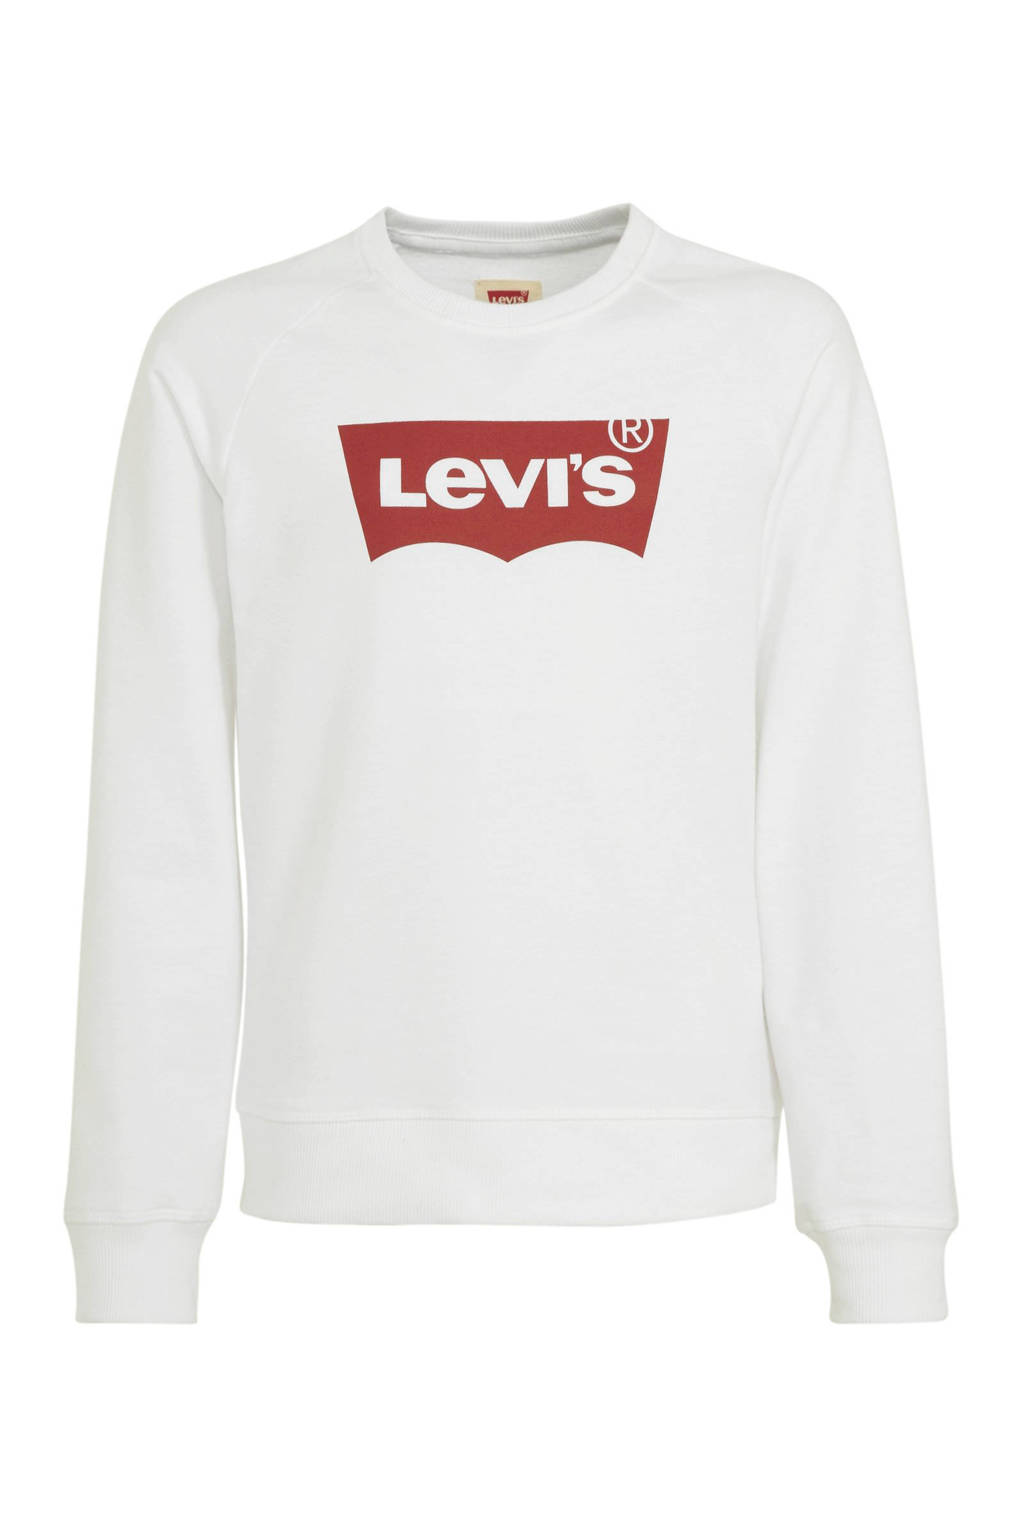 Levi's Kids sweater Batwing met logo wit/rood, Wit/rood